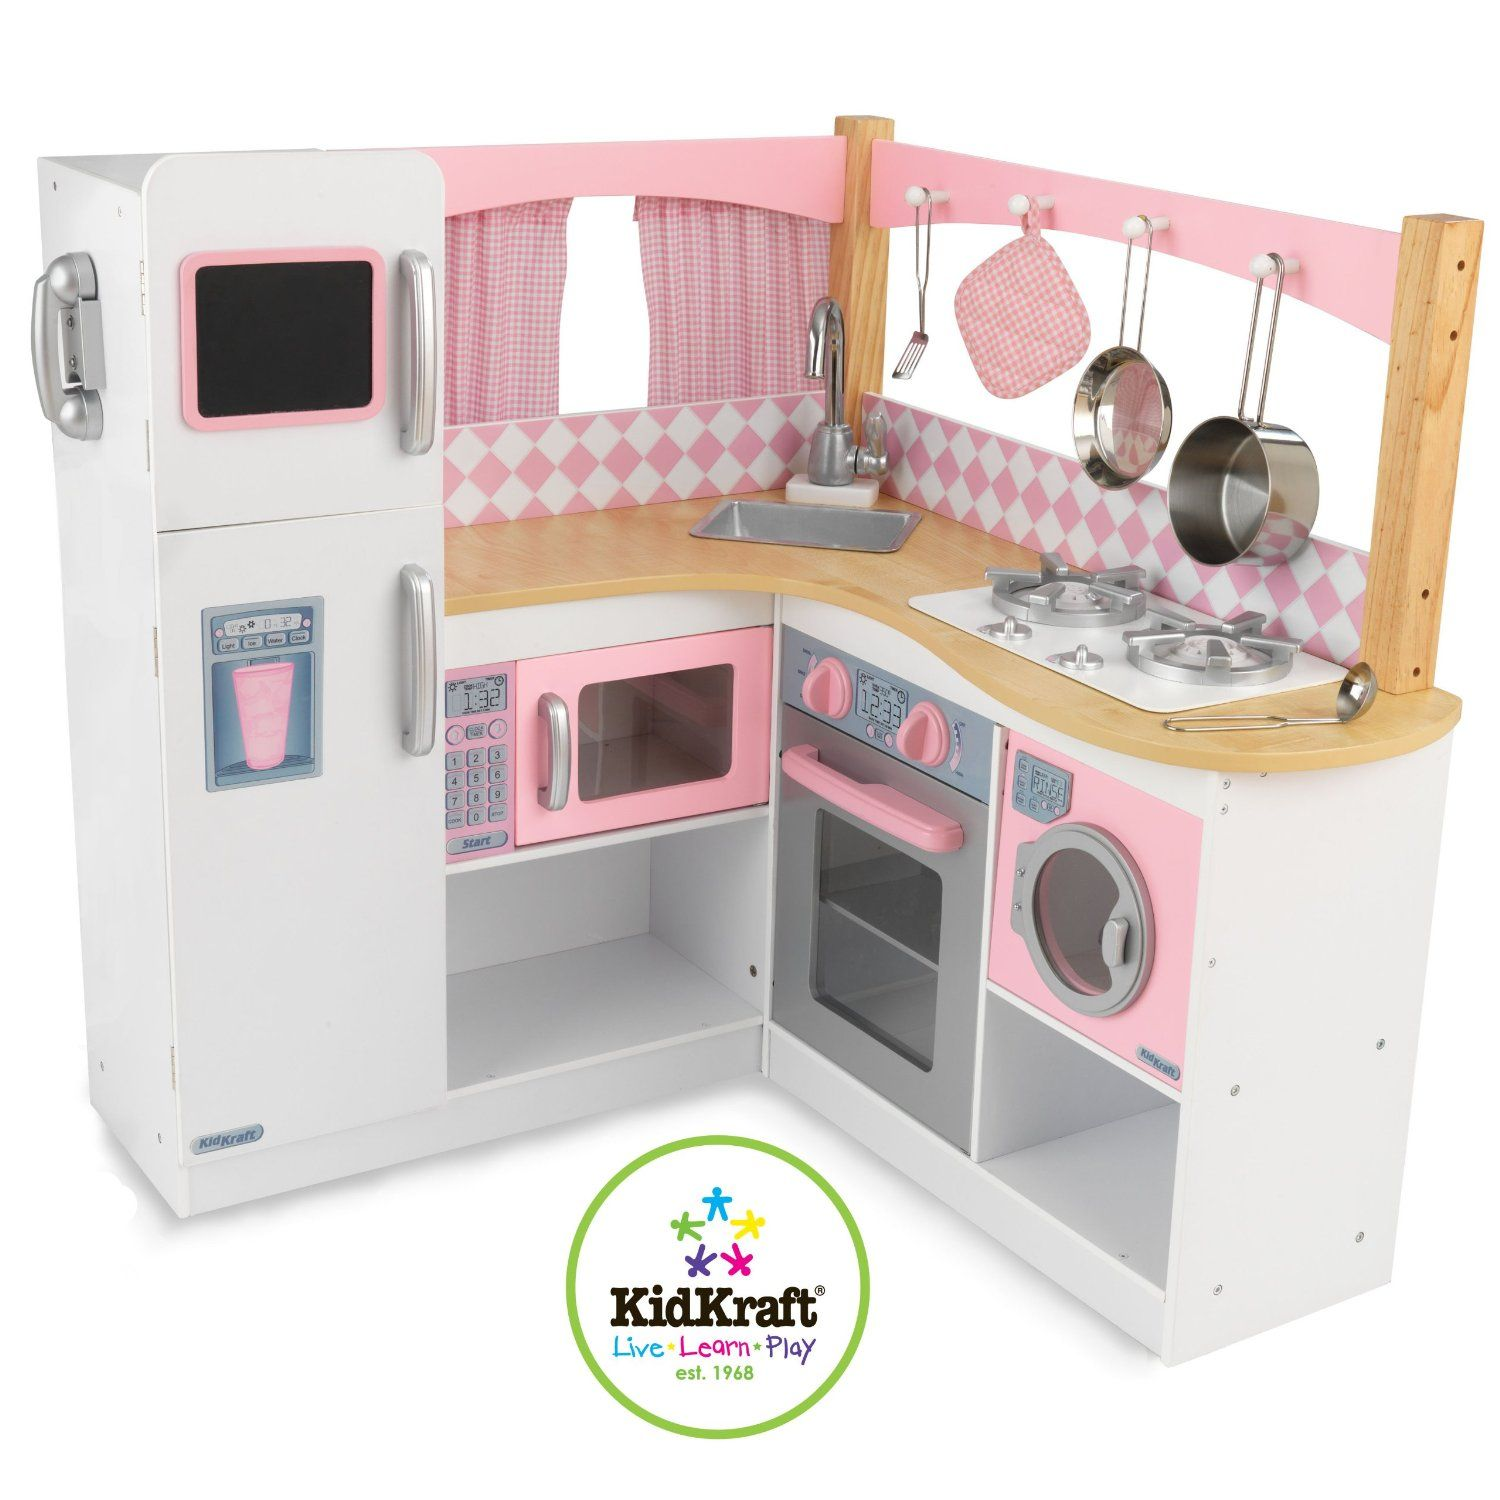 what a cute play kitchen set for your child. accented with pink